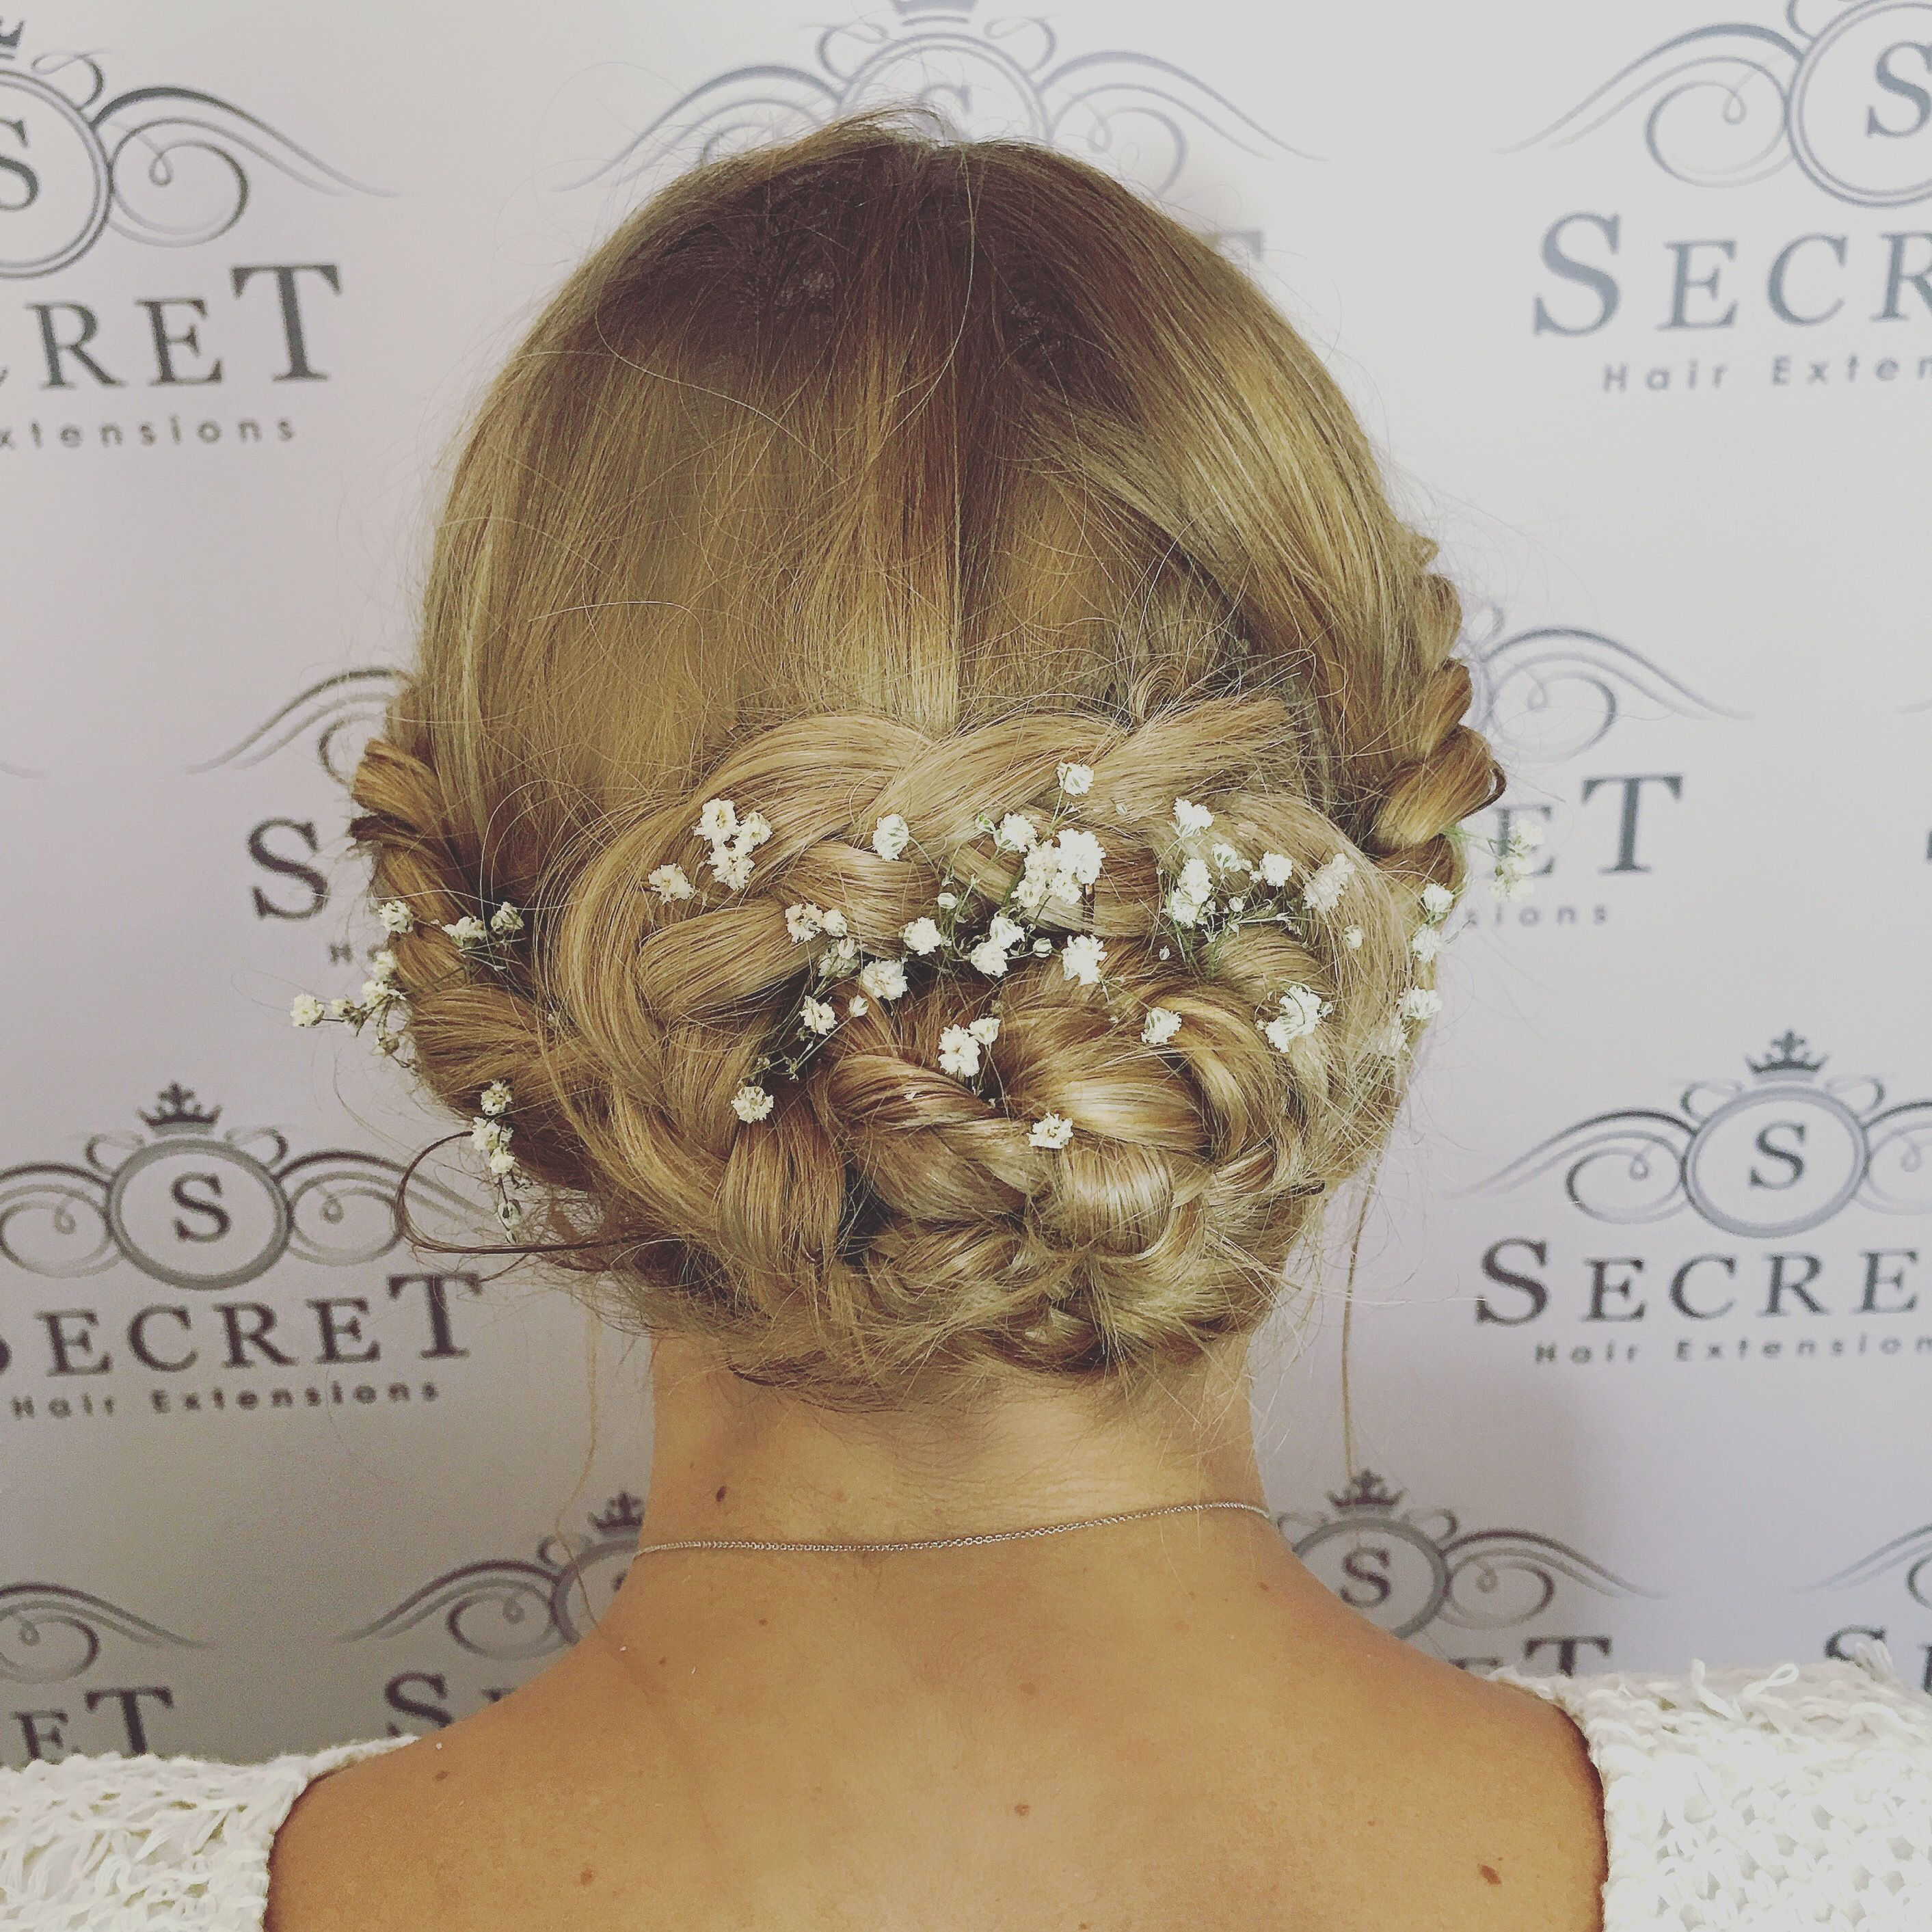 Bridal festival style braided up do created using micro ring hair extensions from Secret Hair UK